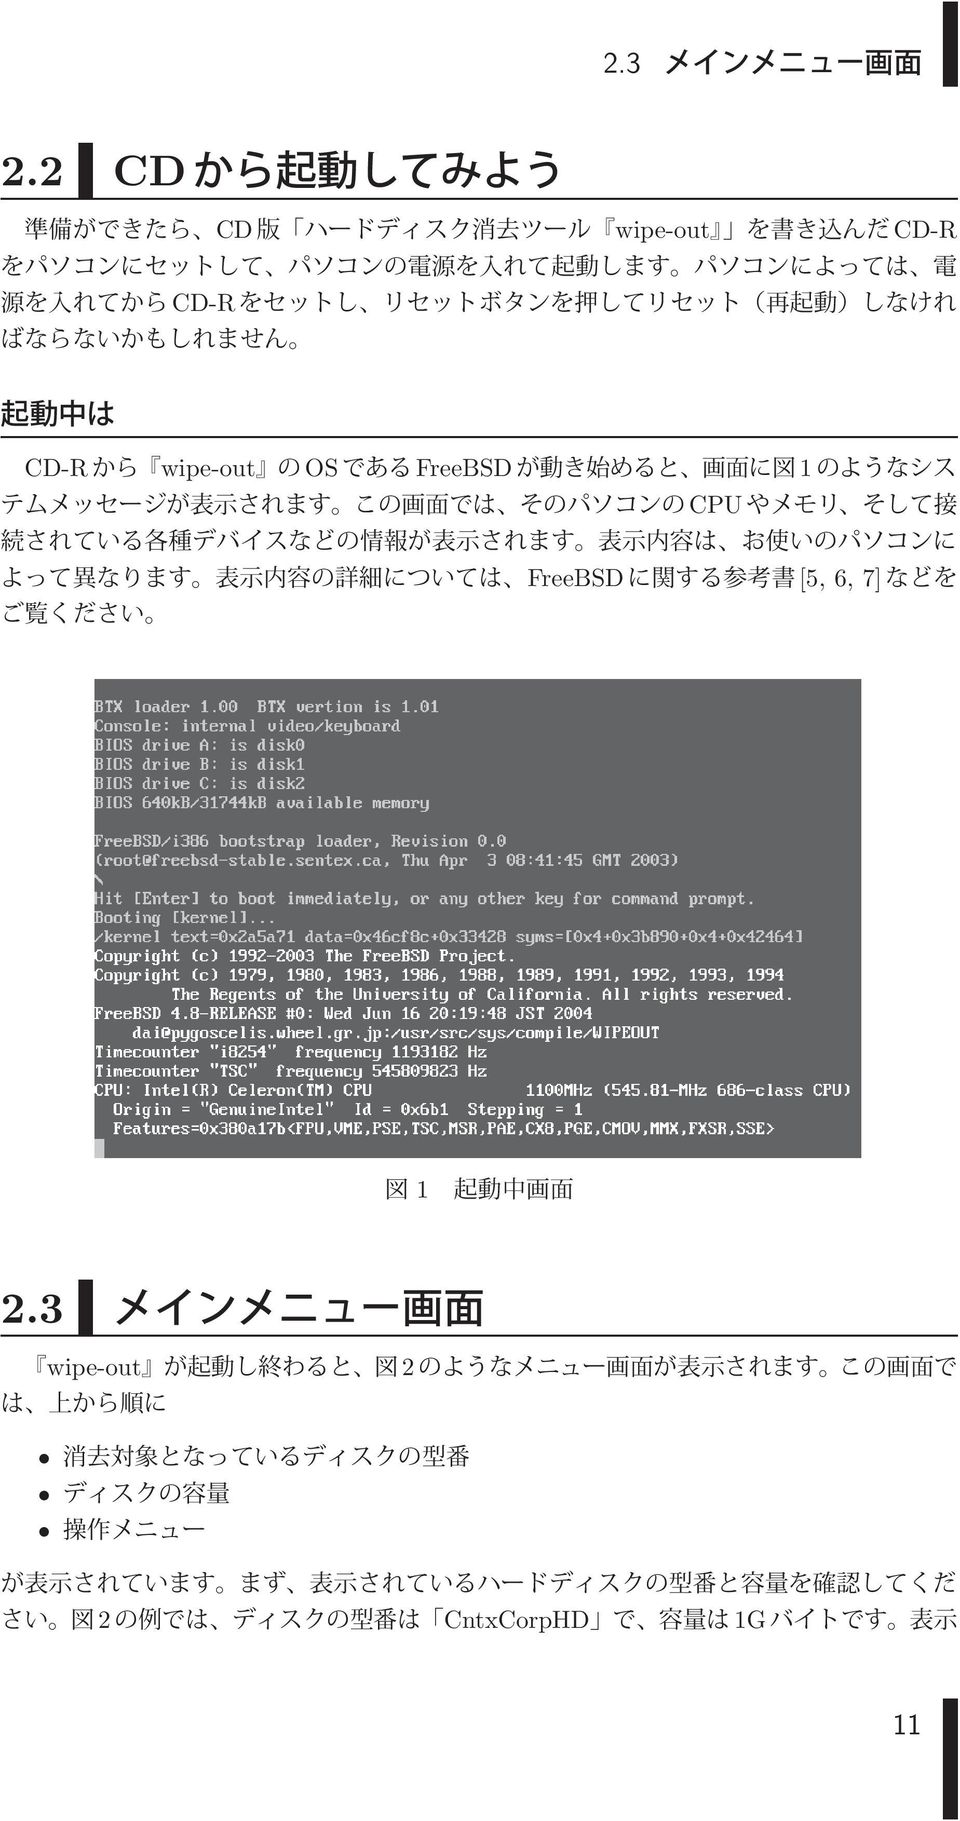 CD-R wipe-out OS FreeBSD 1